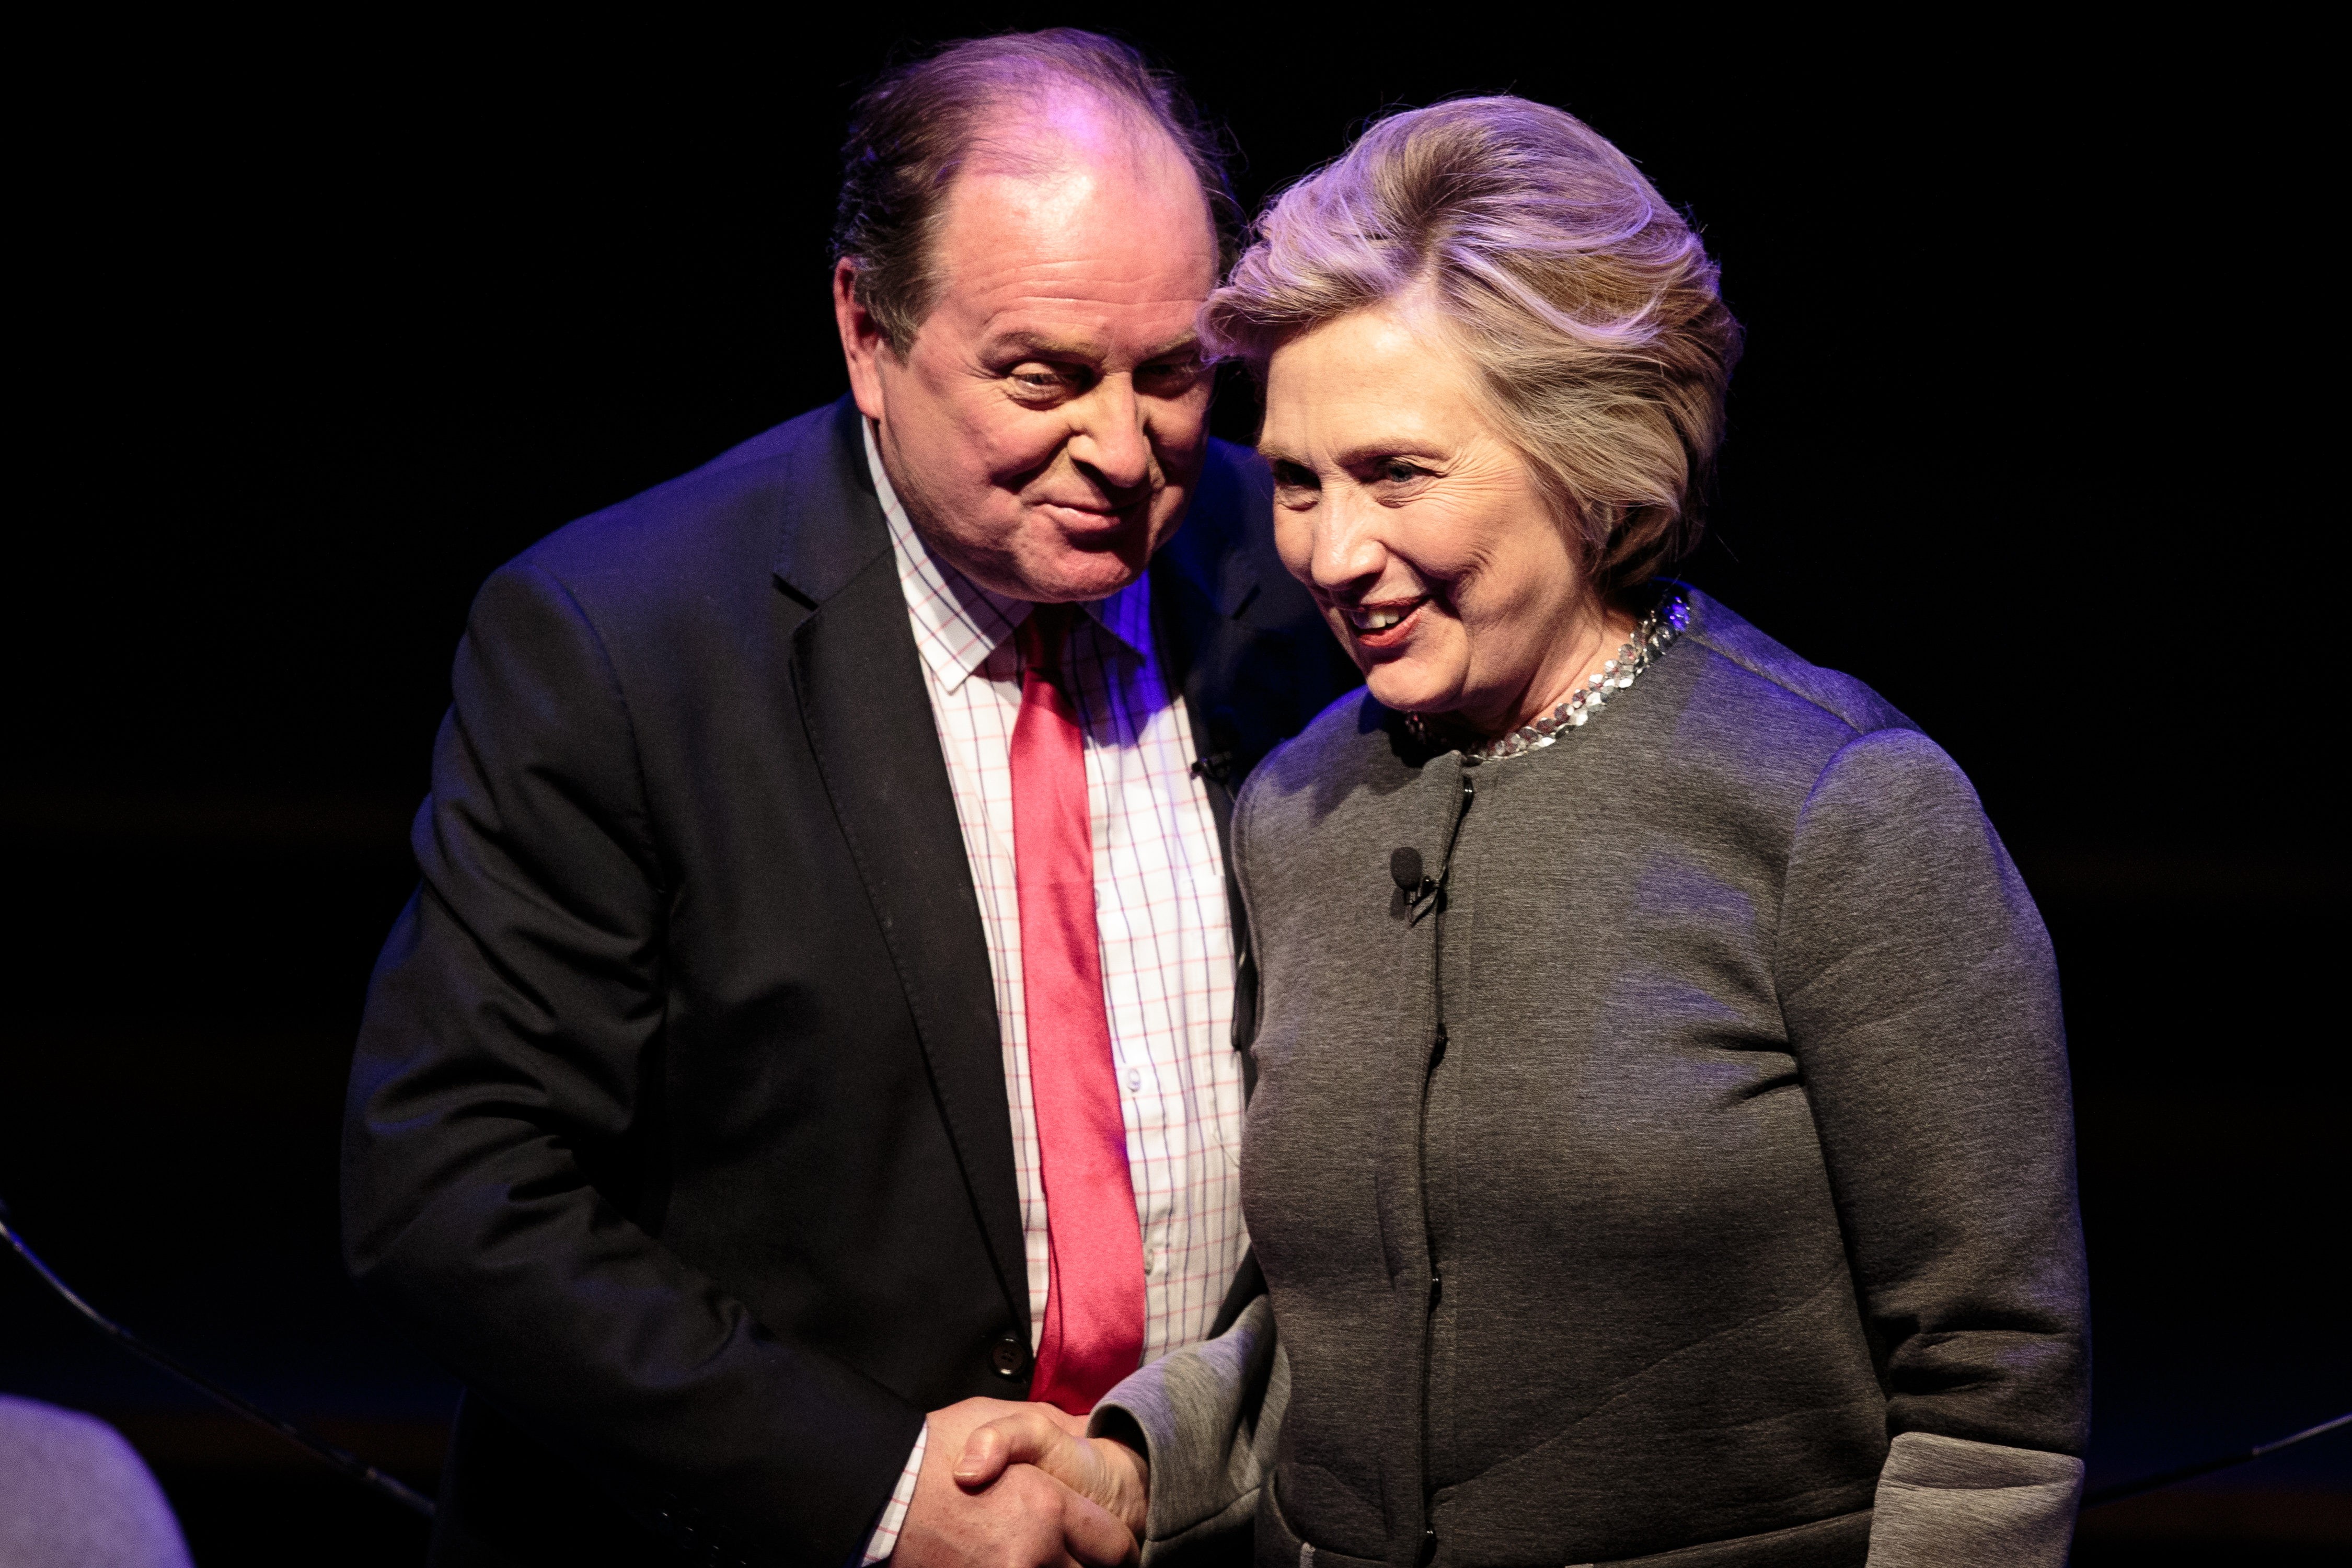 Hilary Clinton (R) shakes hands with broadcaster James Naughtie (L) following her talk at the London Literary Festival at The Royal Festival Hall on October 15, 2017 in London, England.